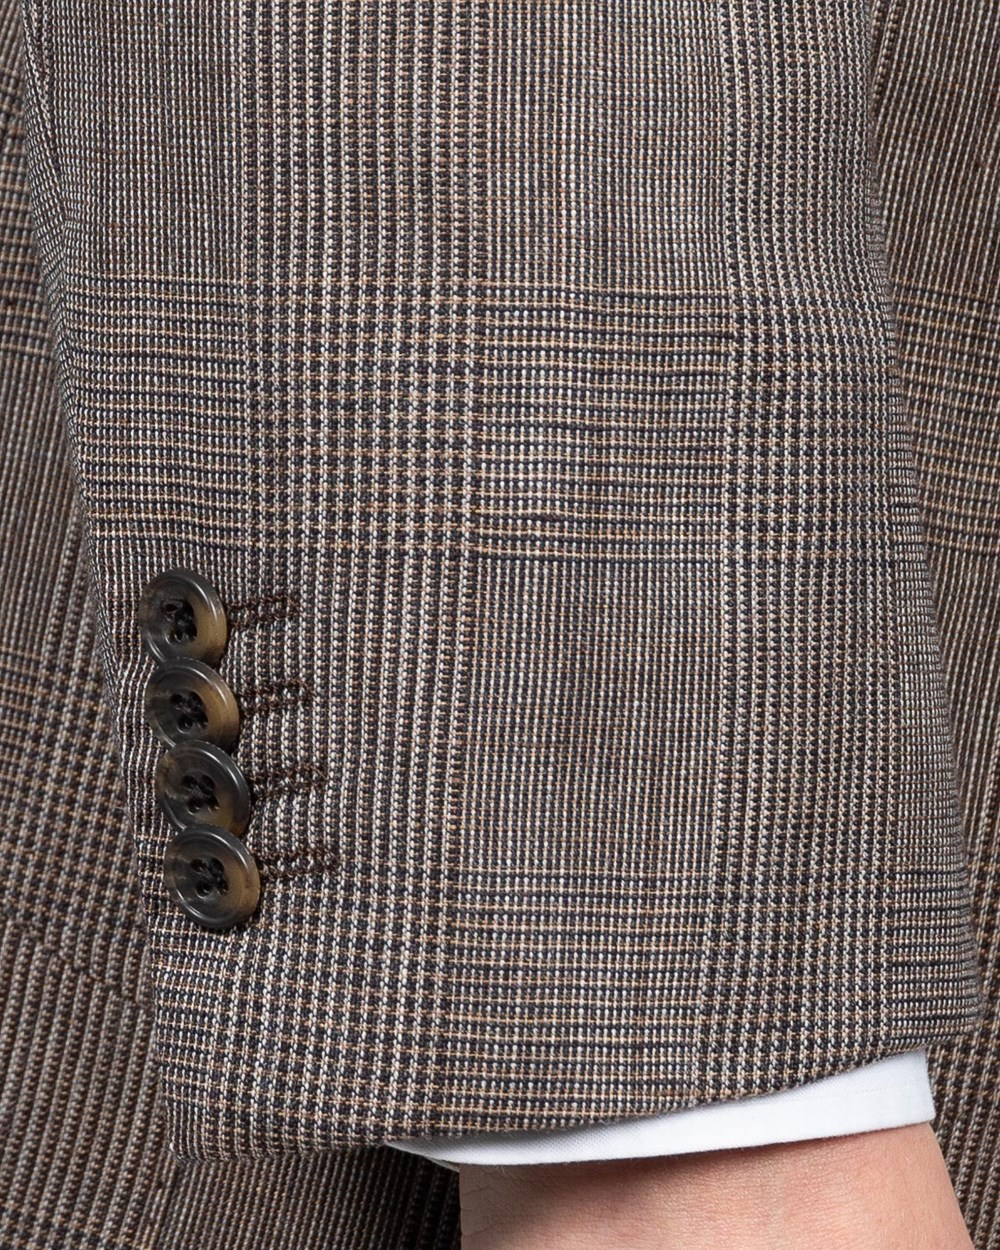 cavour, fox bros, linen, sport coat, mod 2, new arrival, cavour new arrivals, after the suit